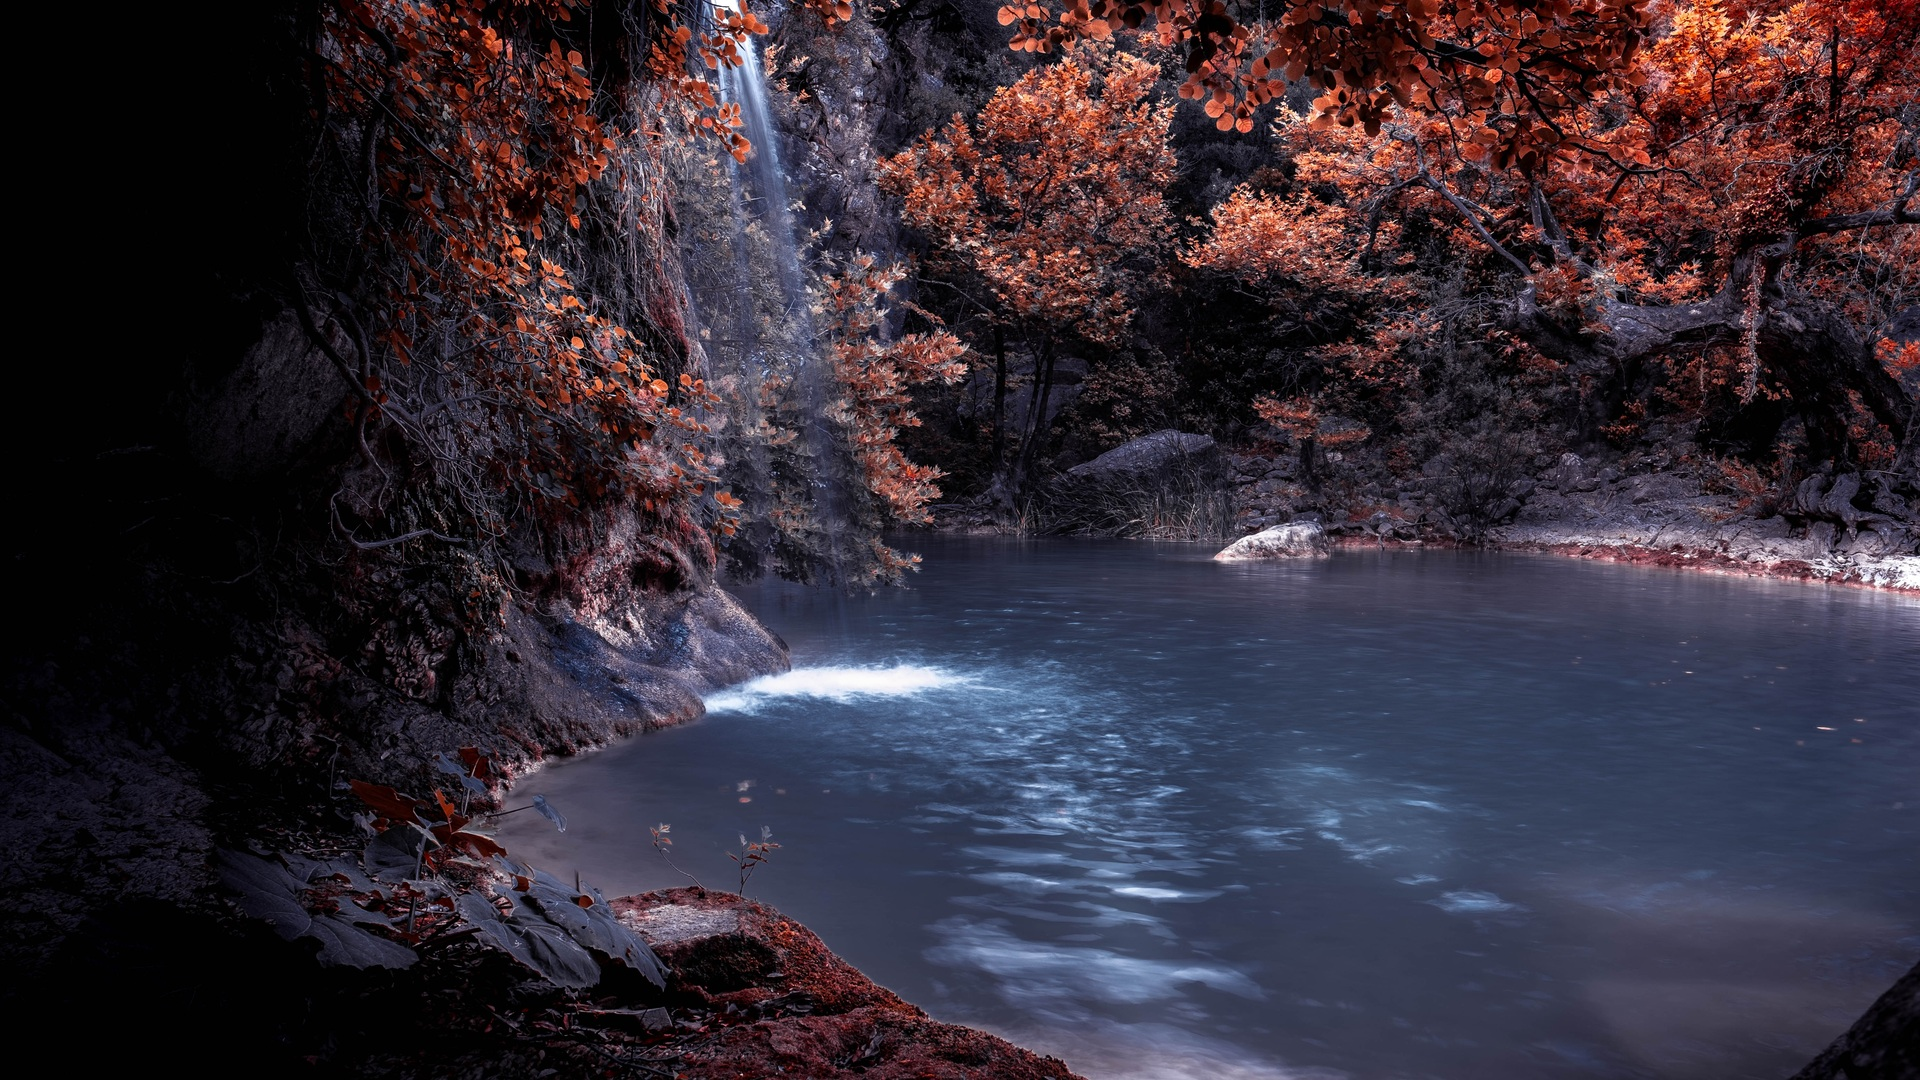 the-blue-lagoon-lake-waterfall-nature-forest-water-5k-92.jpg